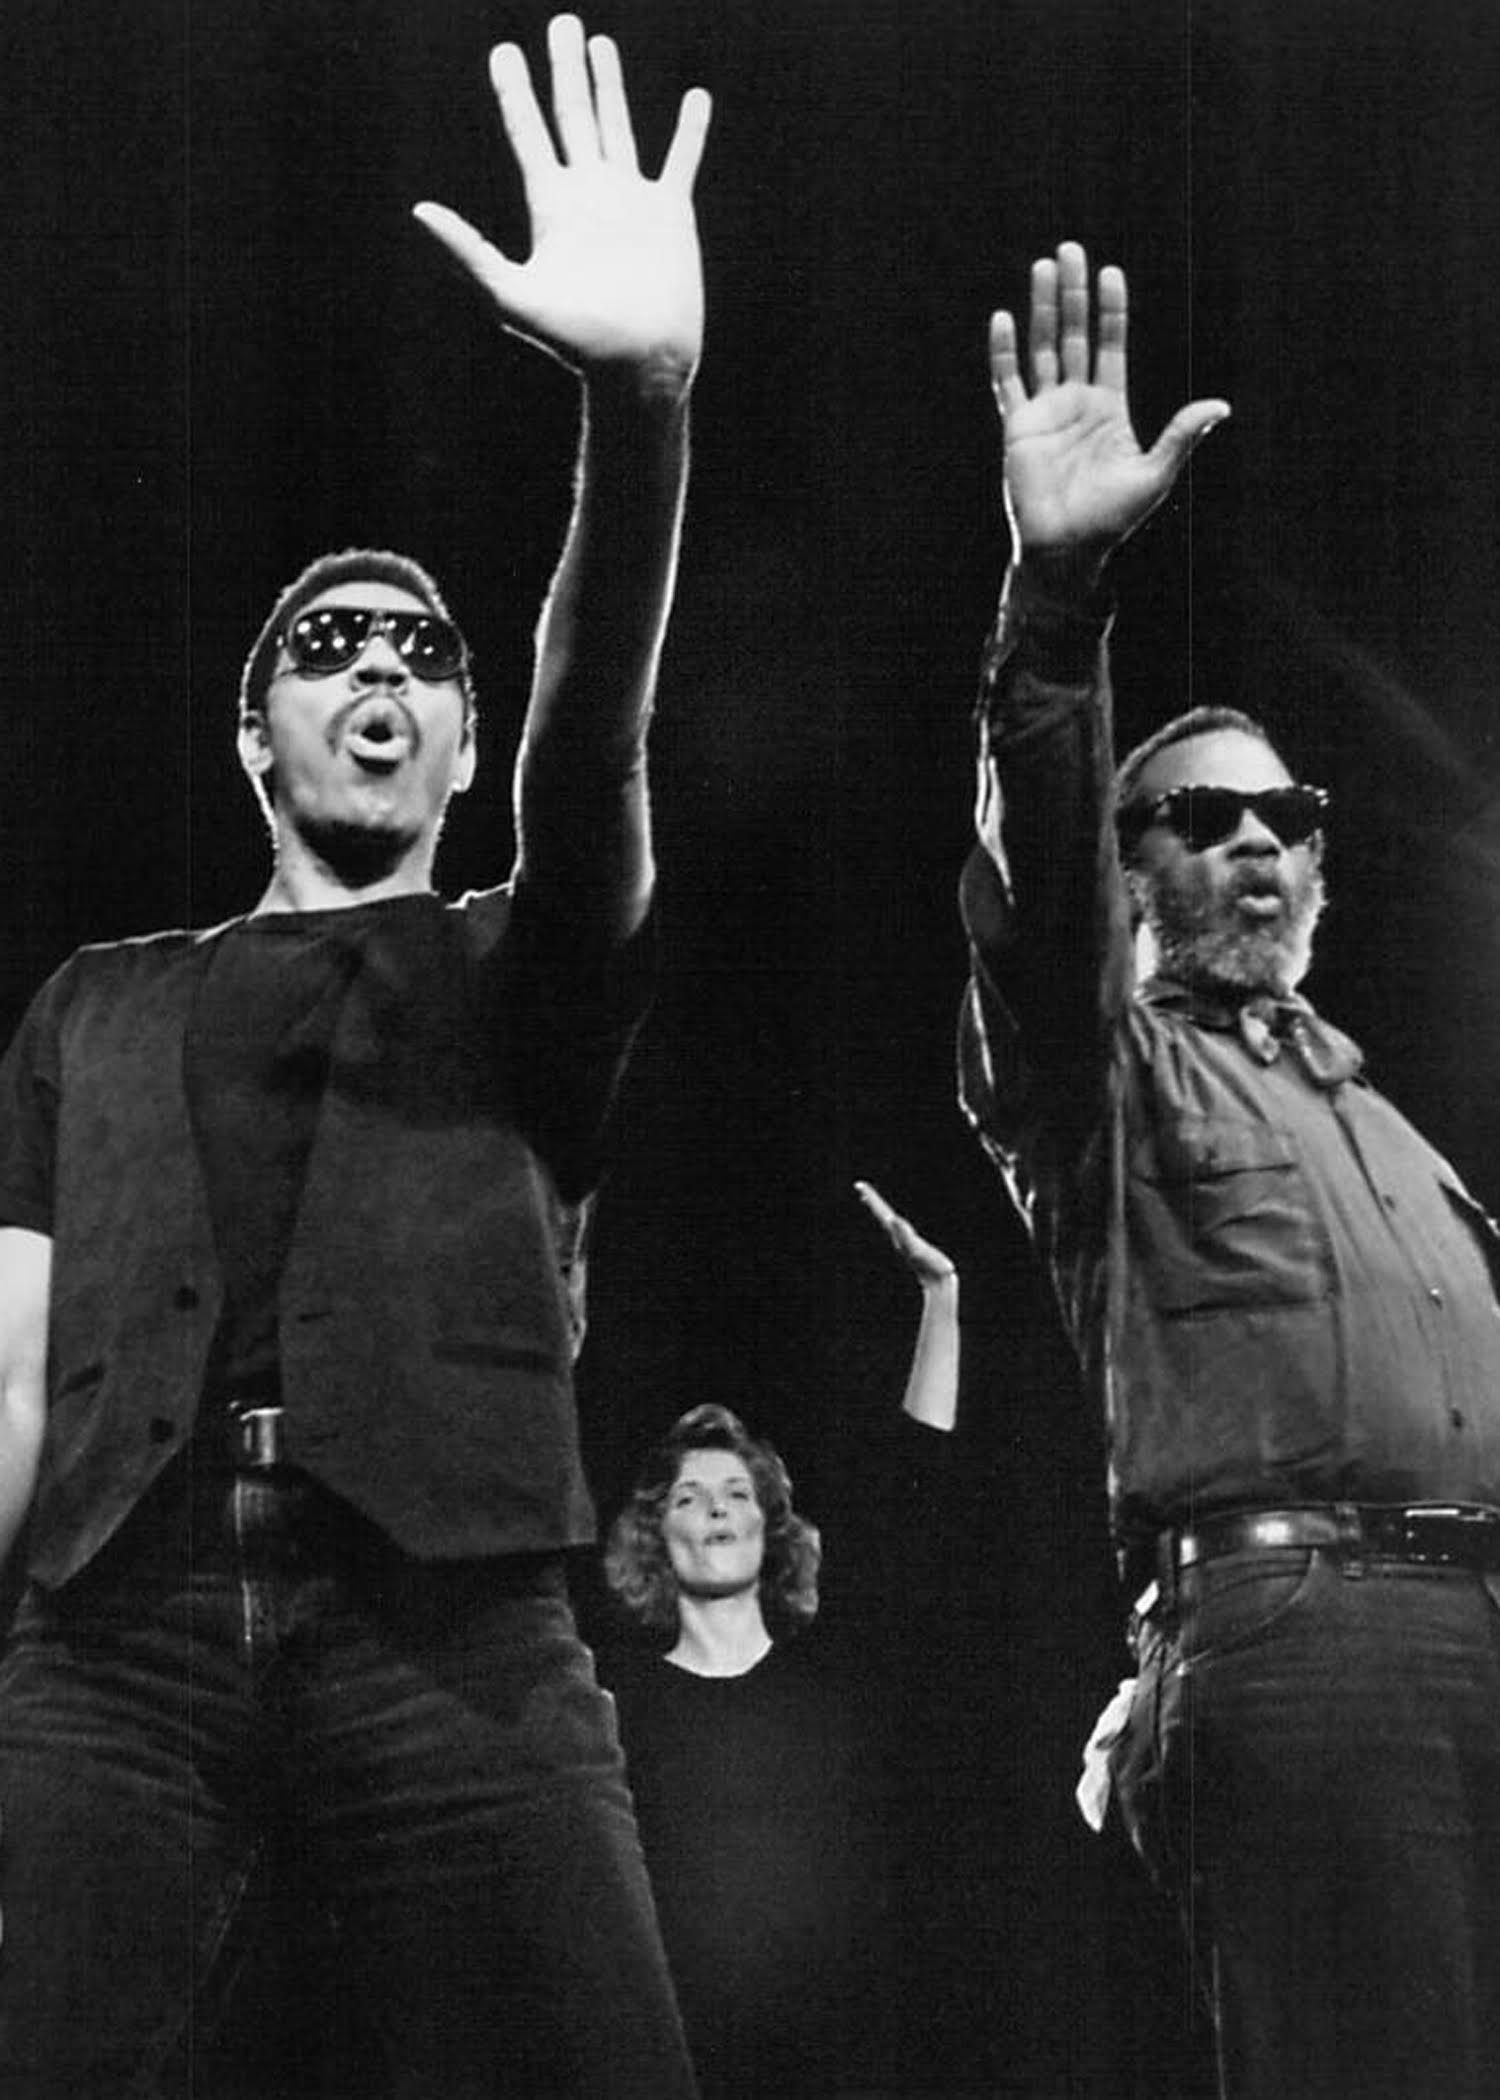 three performers wearing sunglasses with outstretched hands